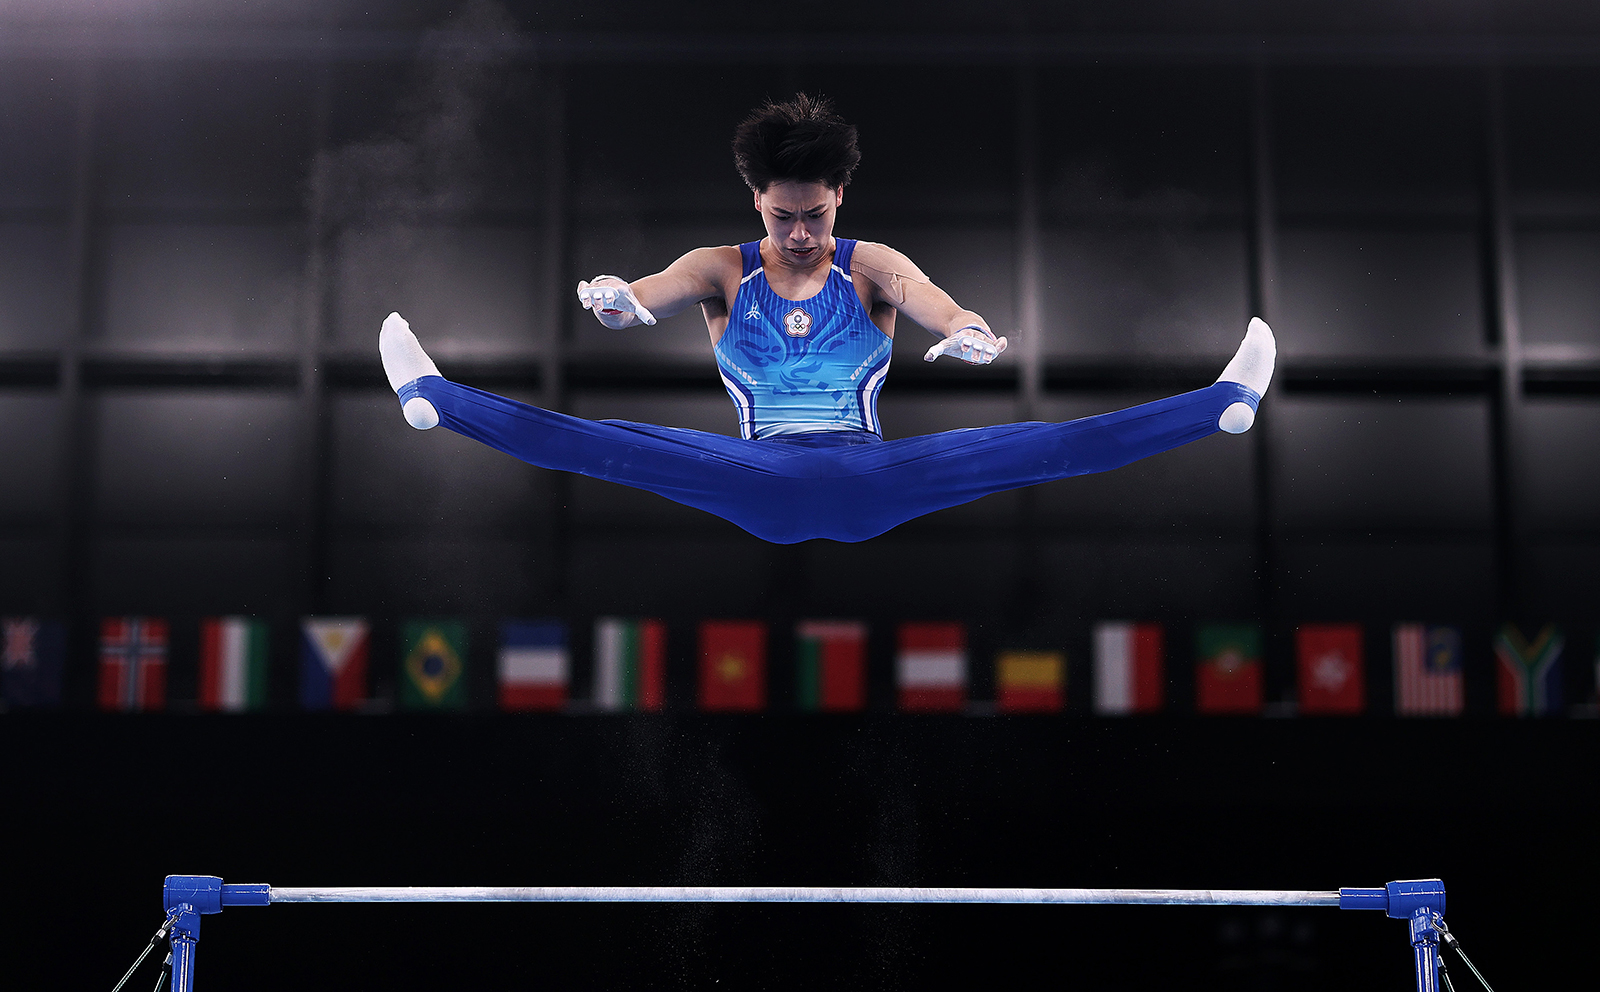 Taiwanesegymnast Shiao Yu-jan prepares to represent the Chinese Taipei team during a practice session at the Ariake Gymnastics Centre ahead of the Olympic Games on July 21, in Tokyo.